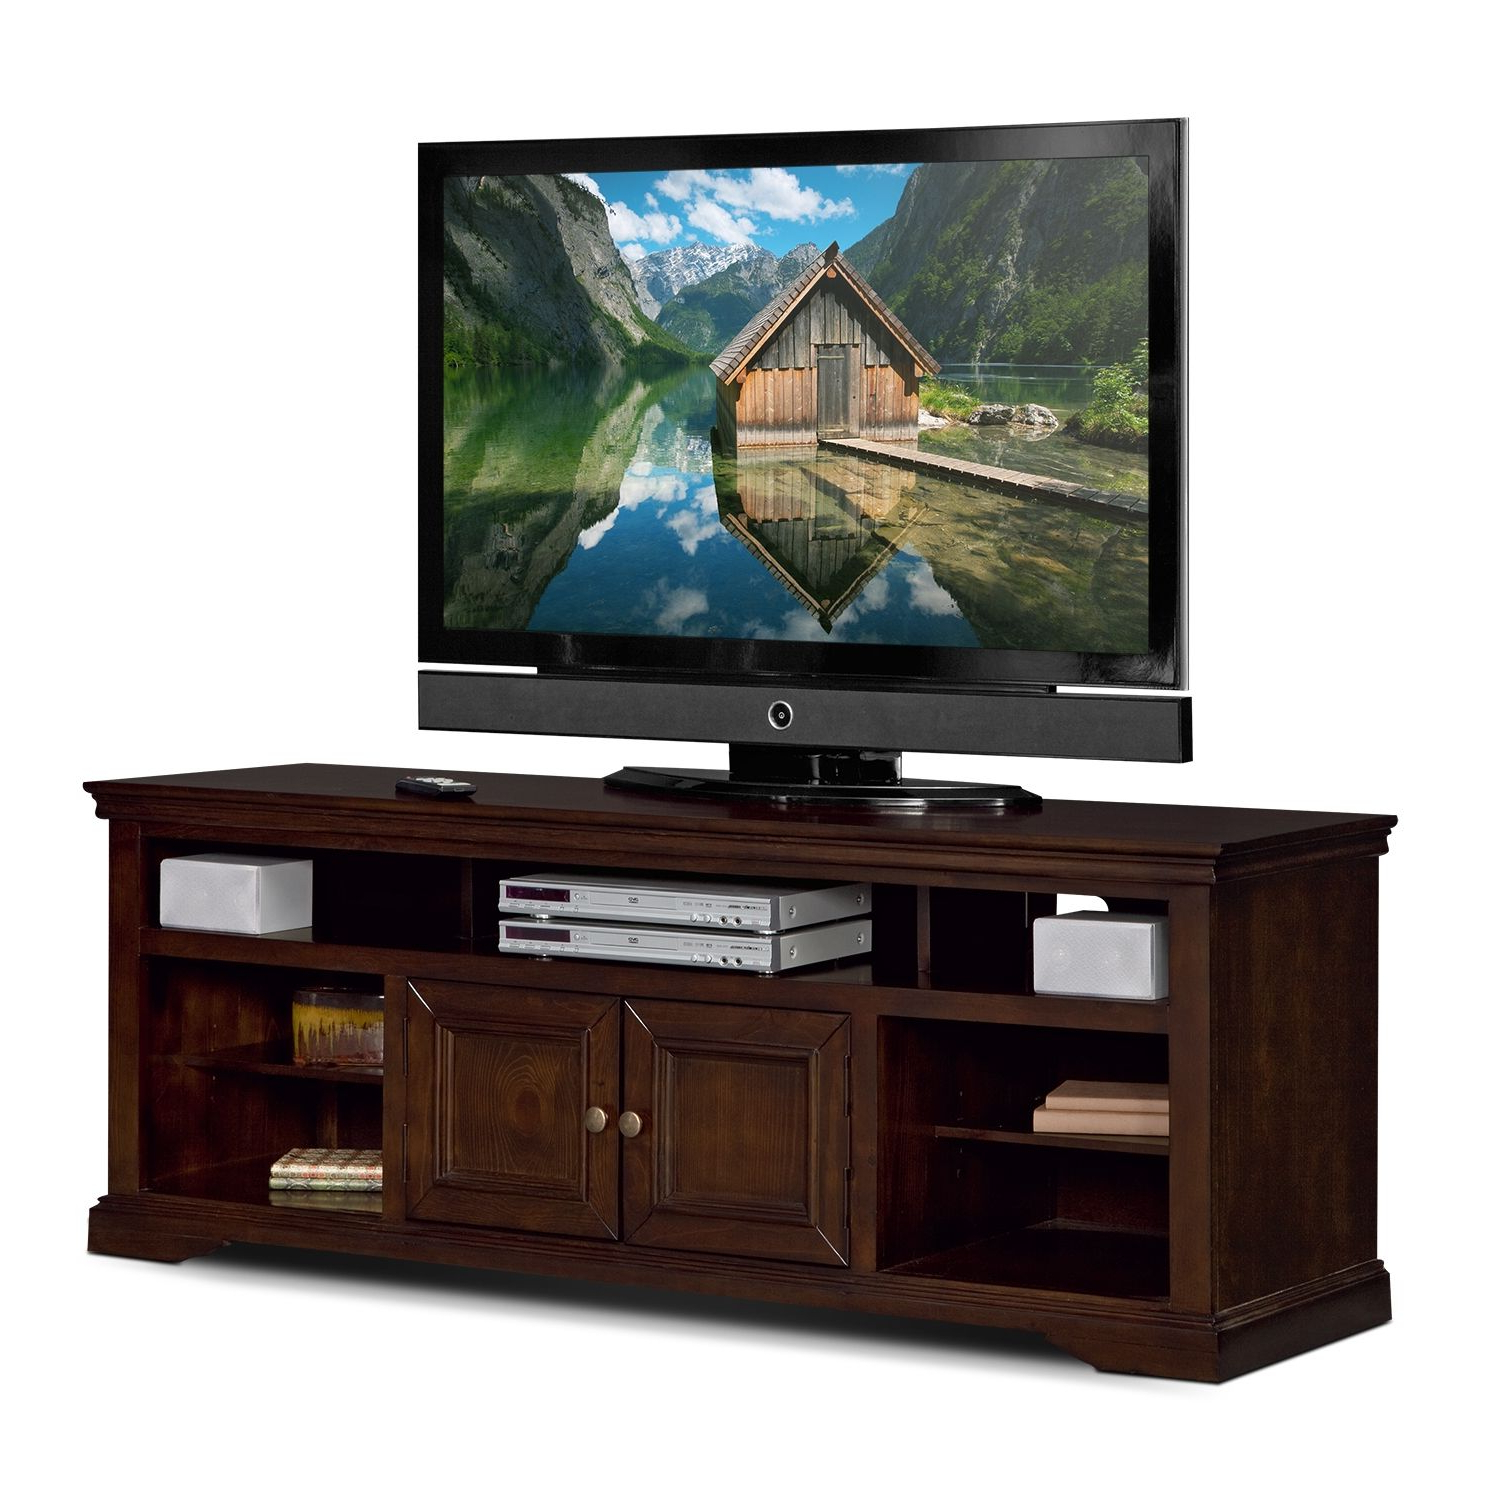 Tv Stands, Living Room Cabinets And Pertaining To 2018 Cherry Tv Stands (View 18 of 20)